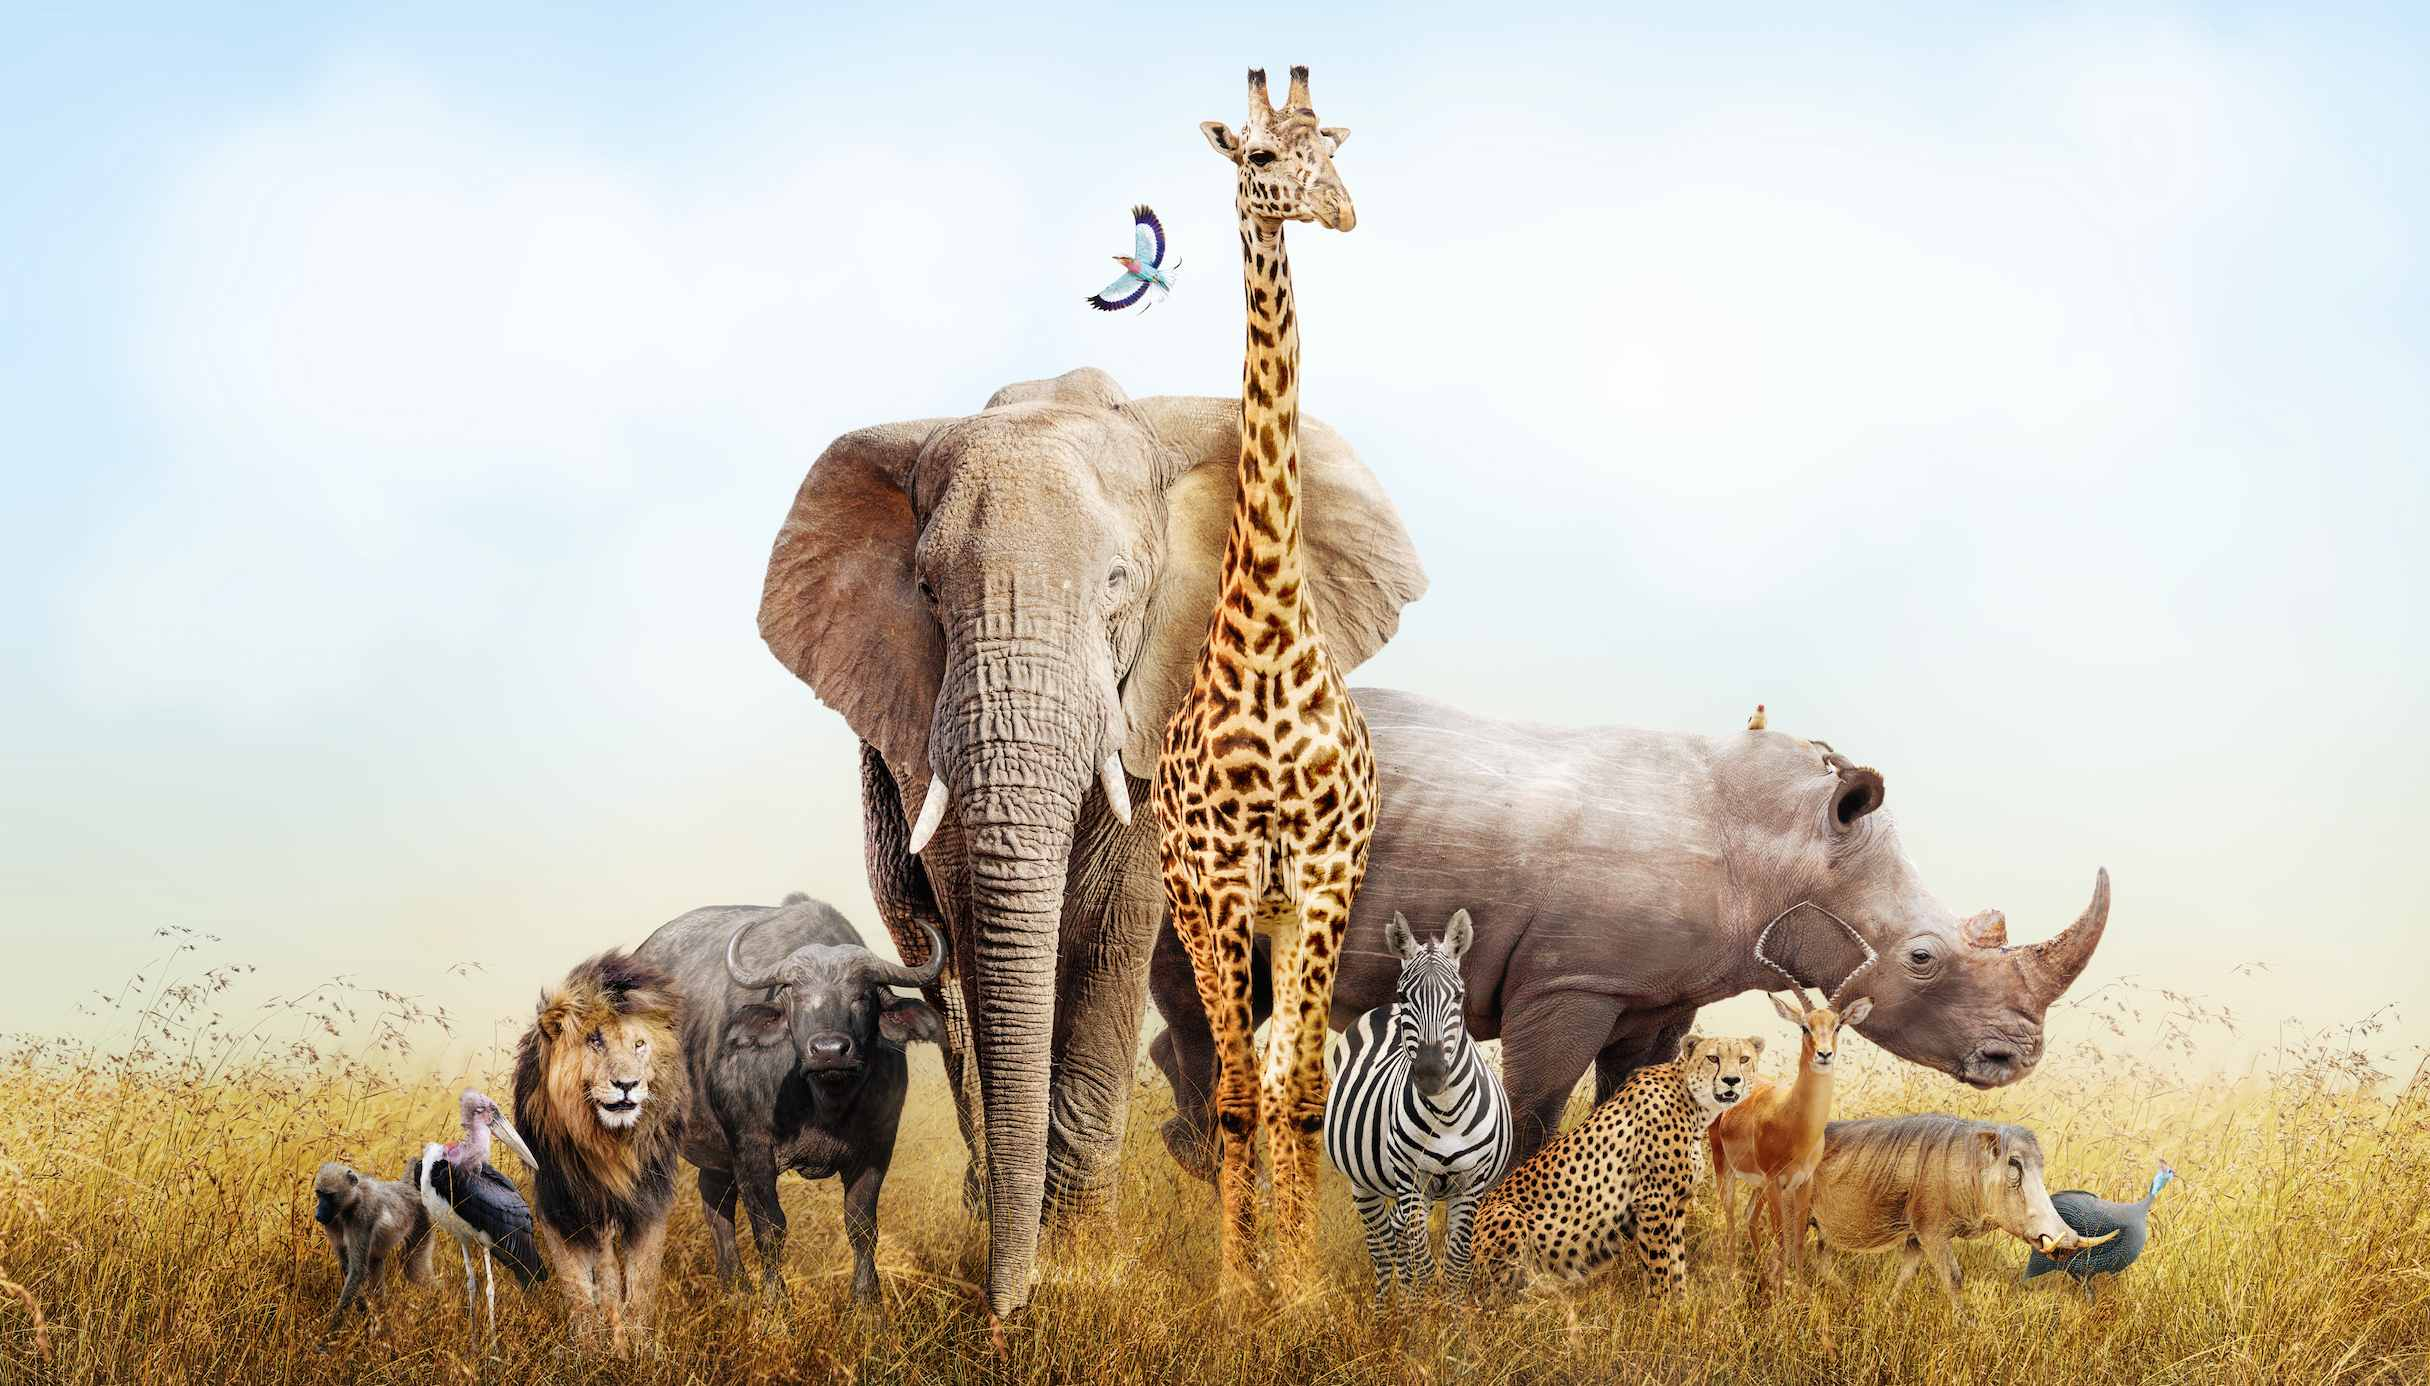 Wild animals including a giraffe, monkey, rhino, zebra, and buffalo